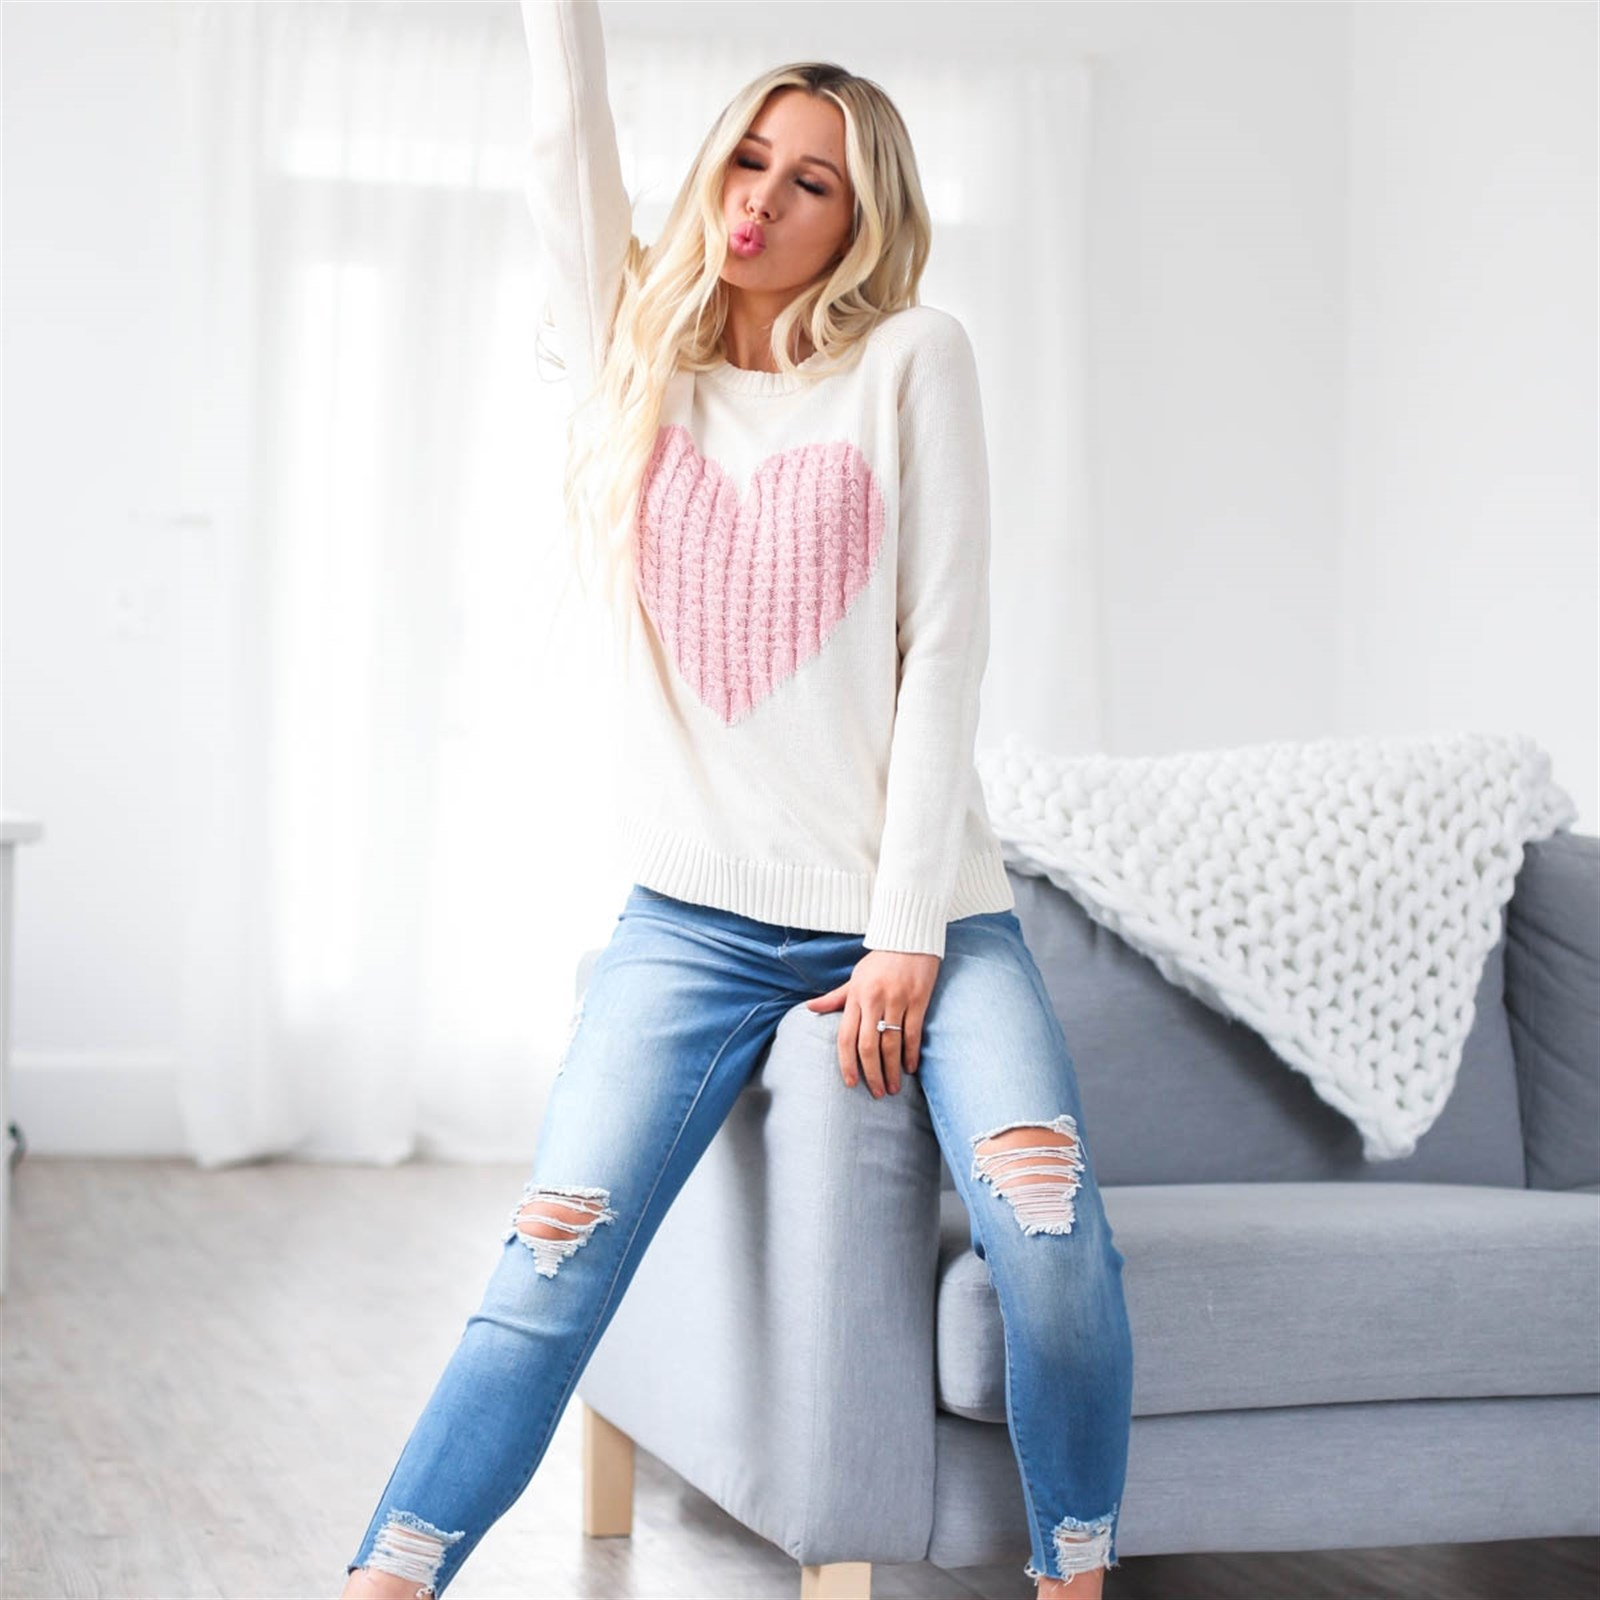 Luxe Love Sweater | 2 Styles